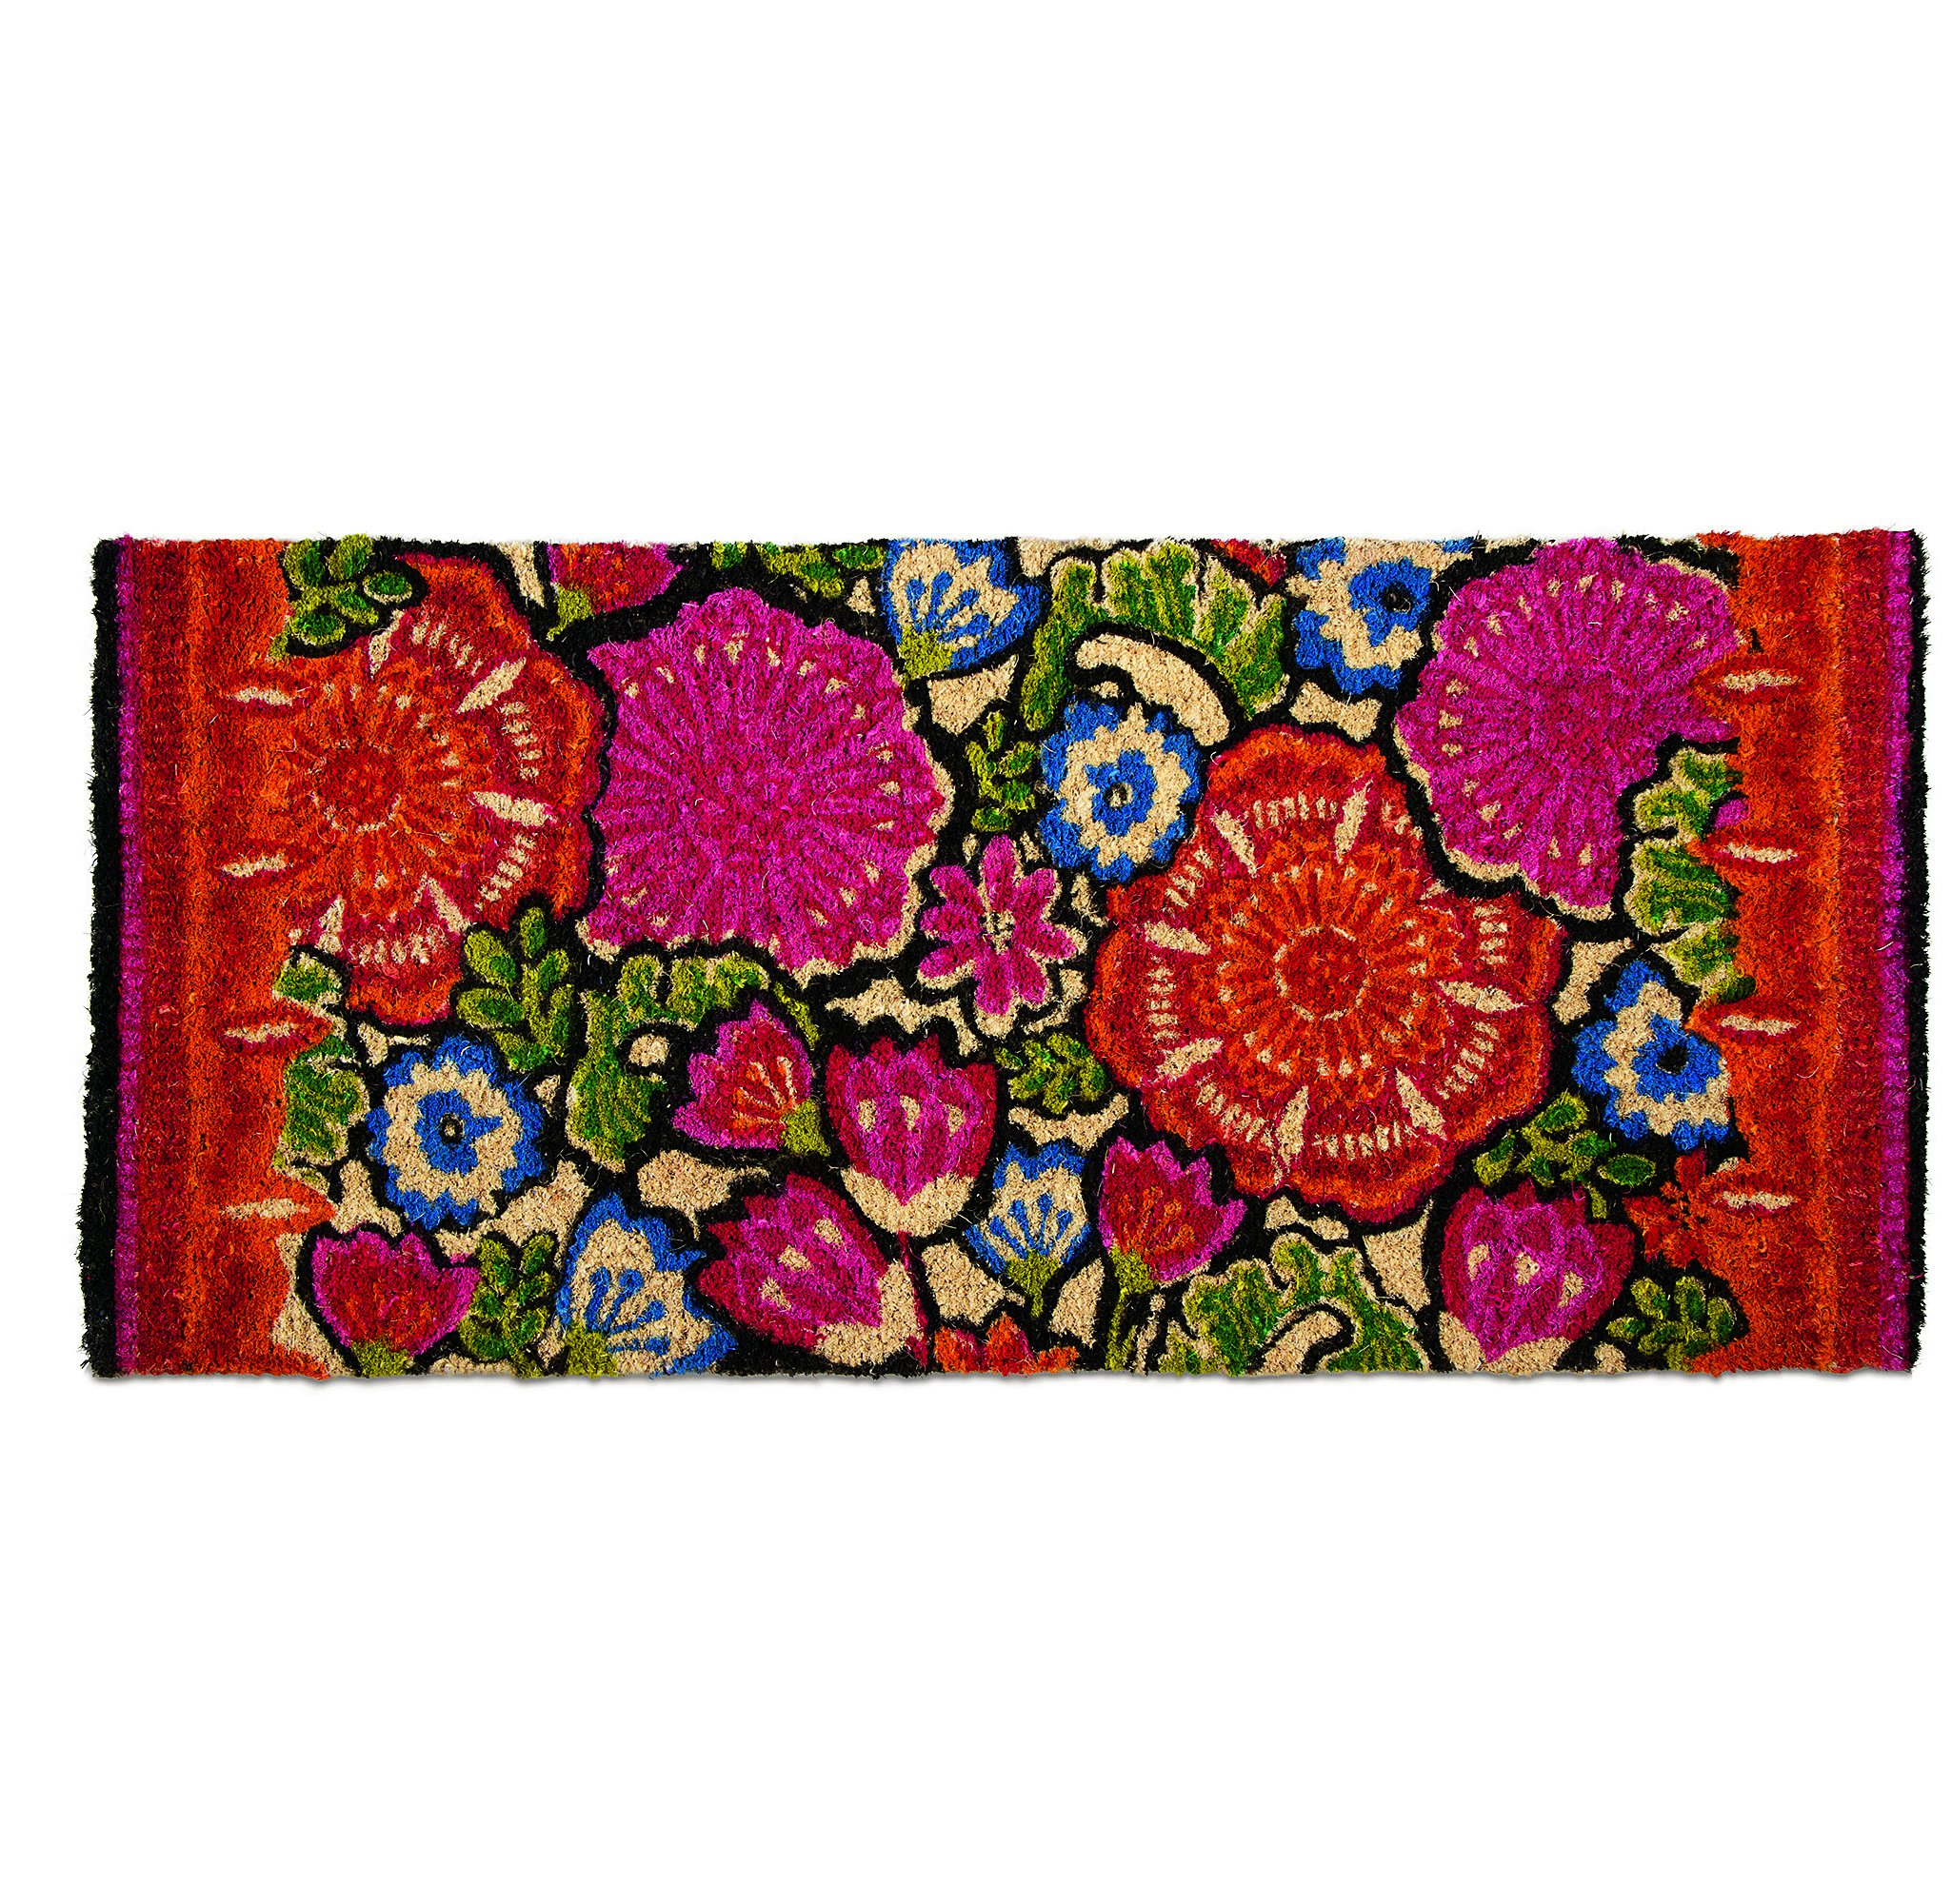 tag - Talavera Estate Coir Mat, Decorative All-Season Mat for the Front Porch, Patio or Entryway, Multi by tag